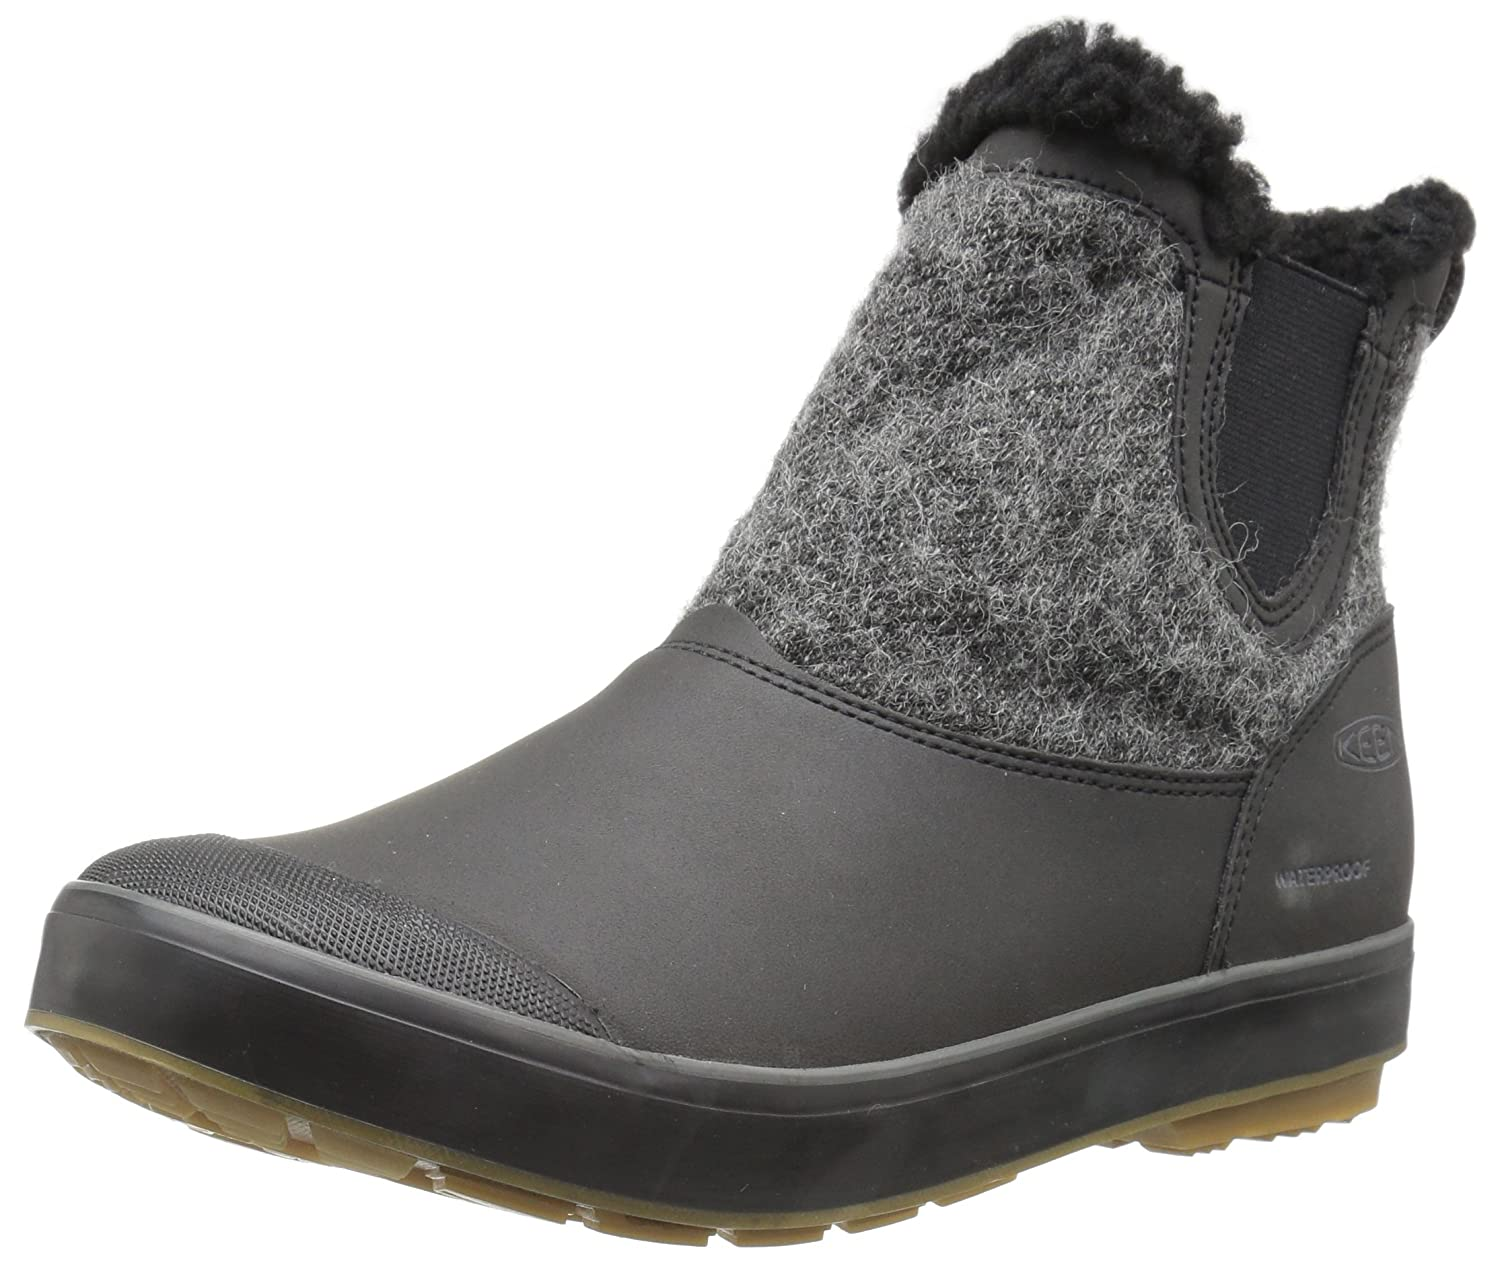 KEEN Women's Elsa Chelsea Waterproof Boot B01N420YGV 9 B(M) US|Black Wool